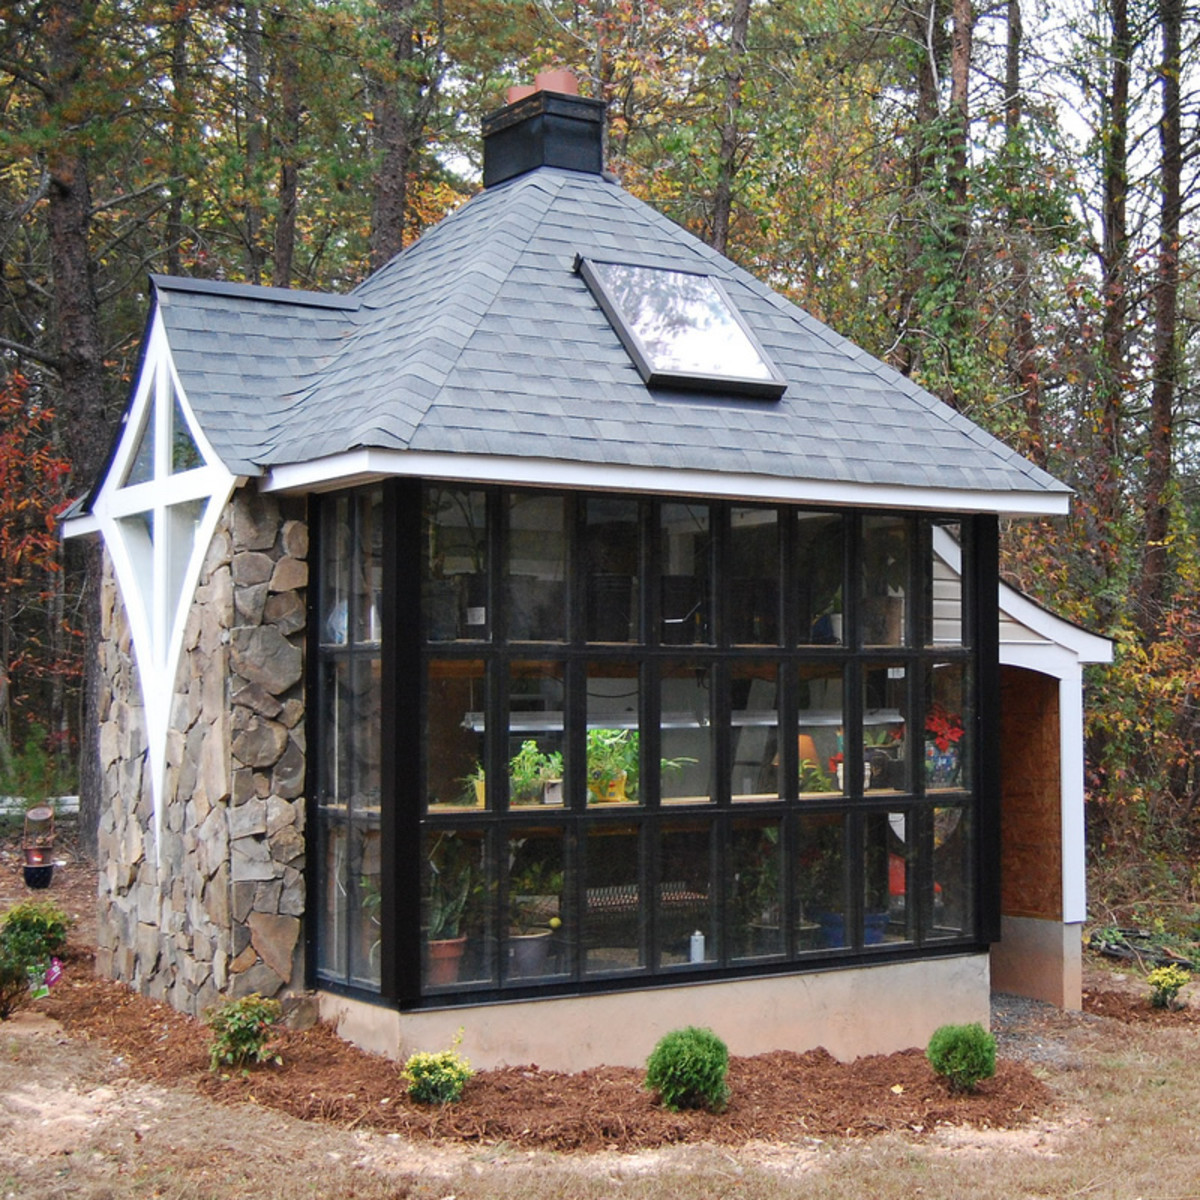 10 Things to Consider Before Building Your Own Tiny House or He/She Shed